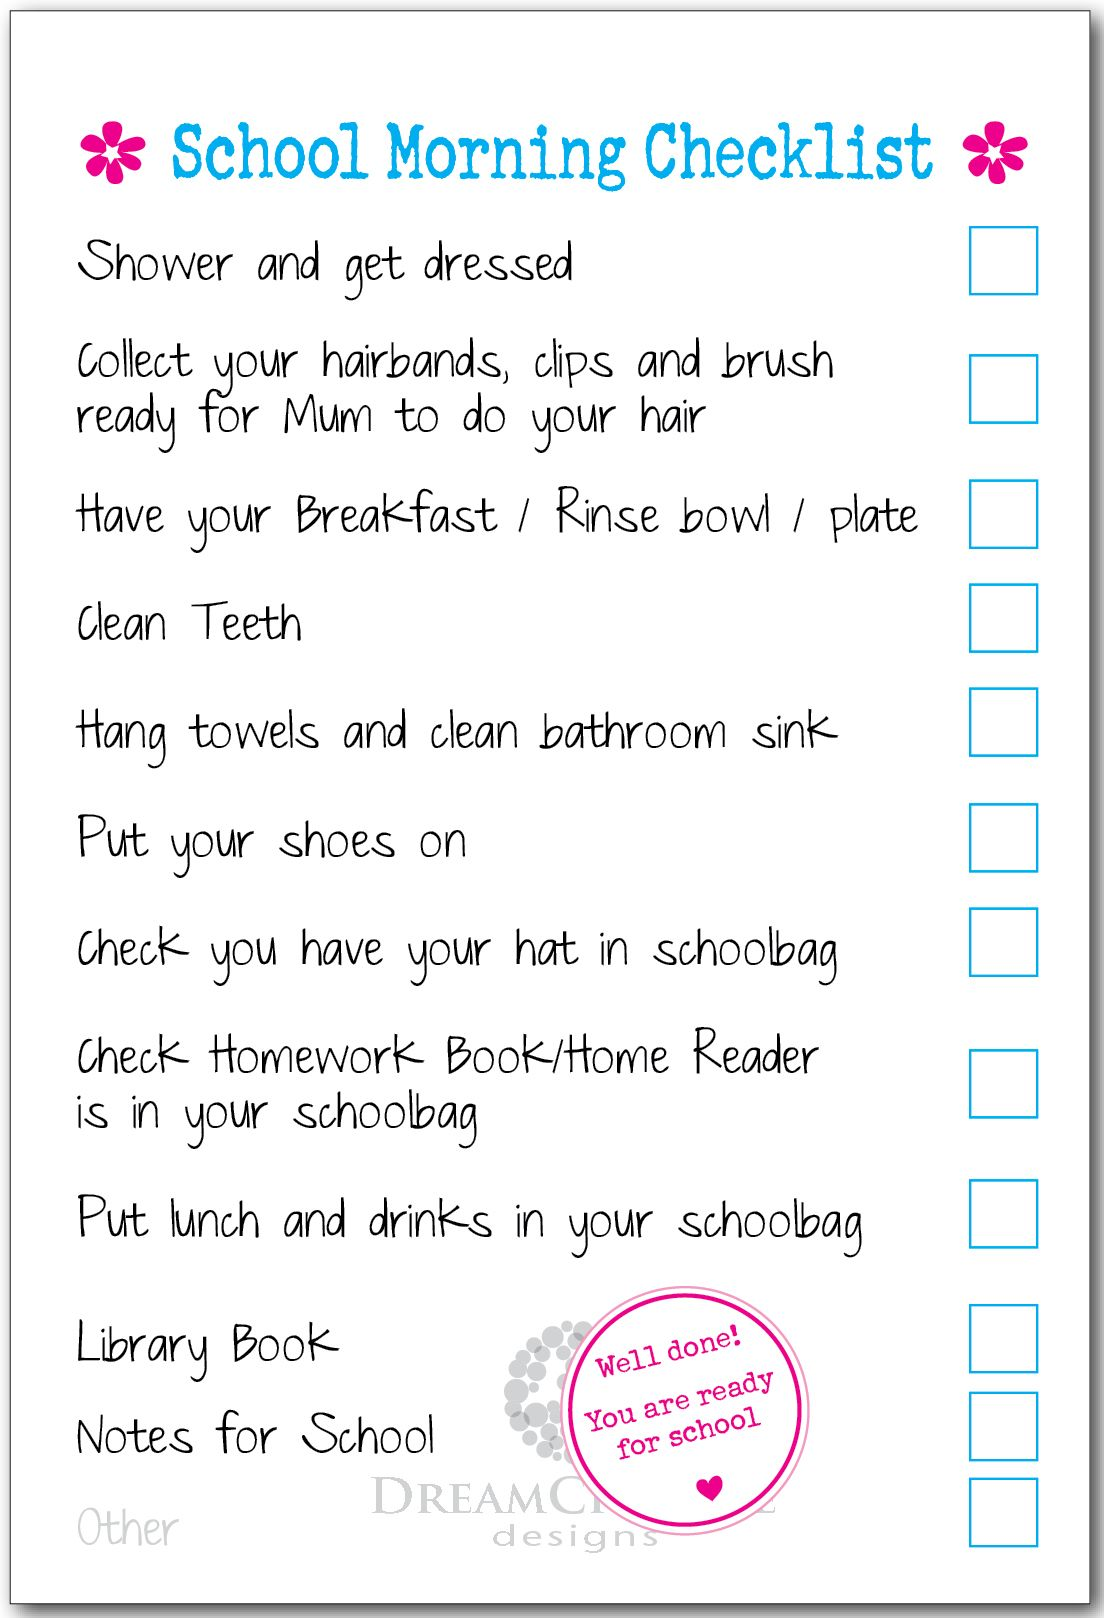 Boys and girls as is or customised to suit your morning routine and